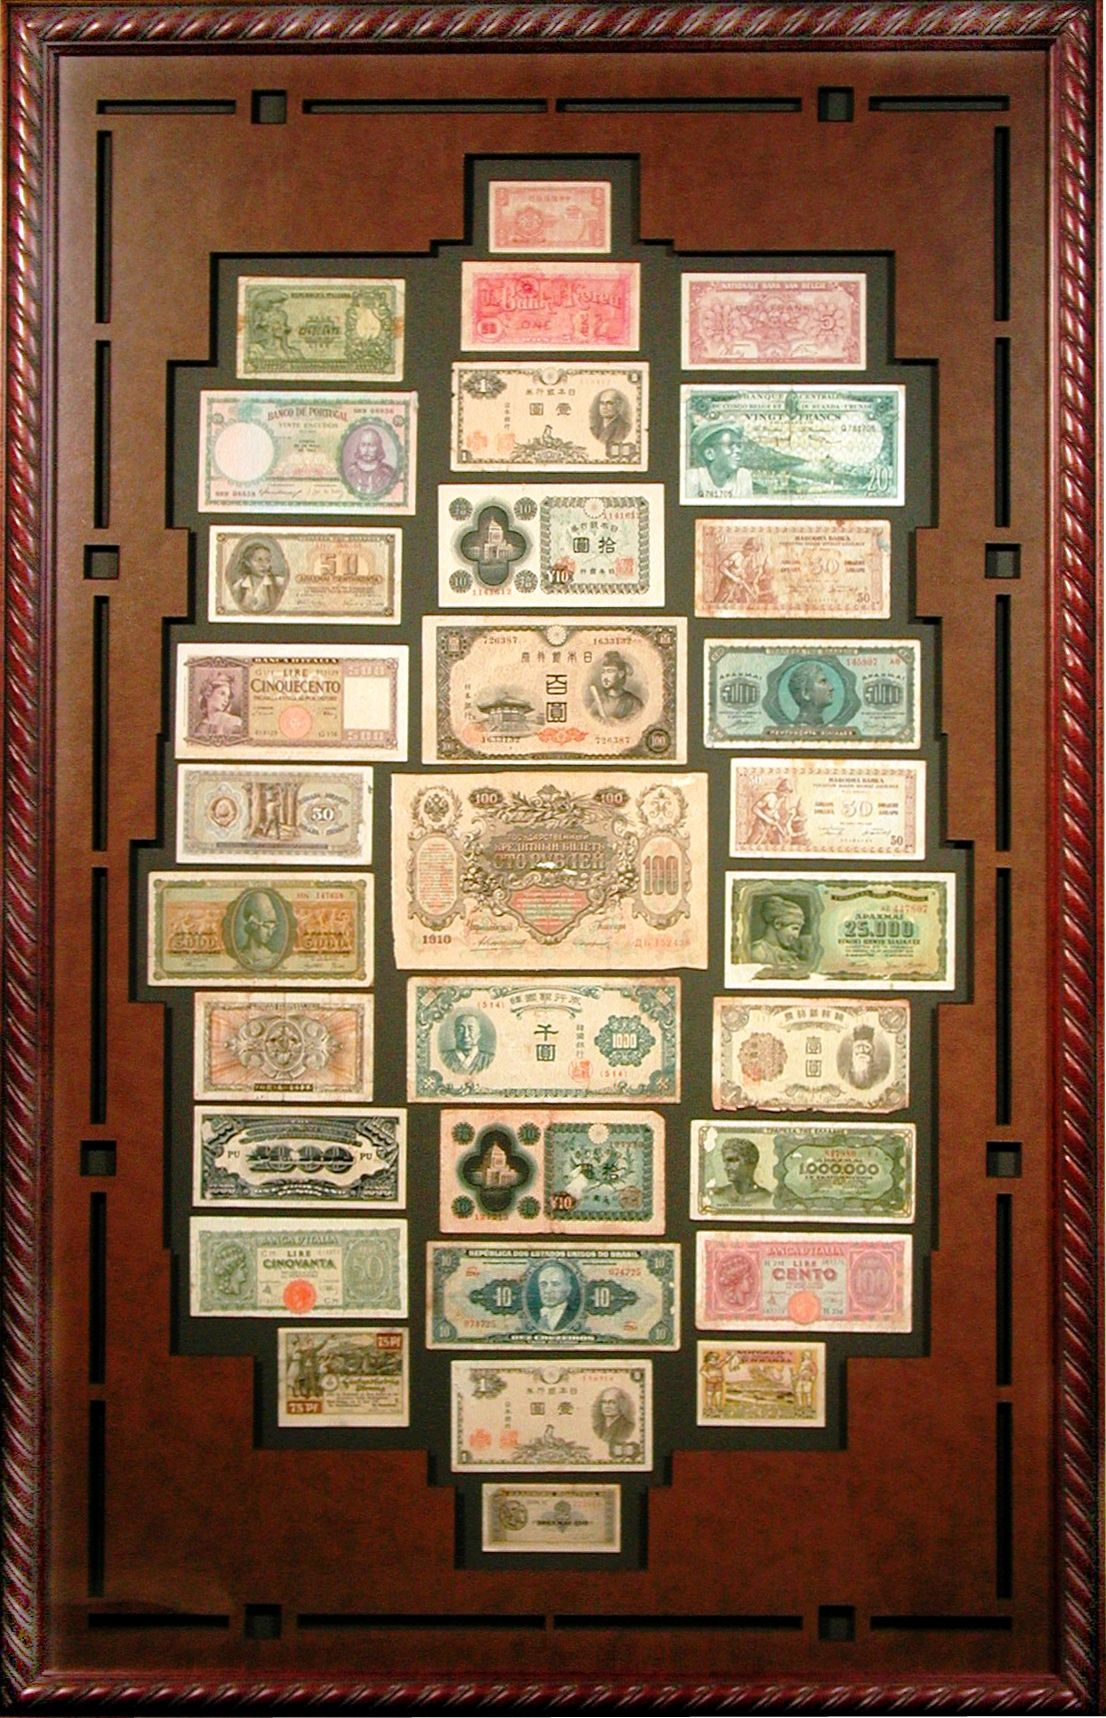 Collection Of International Currency In A Bradley S Custom Frame Perfect To Showcase World Traveler Adventures